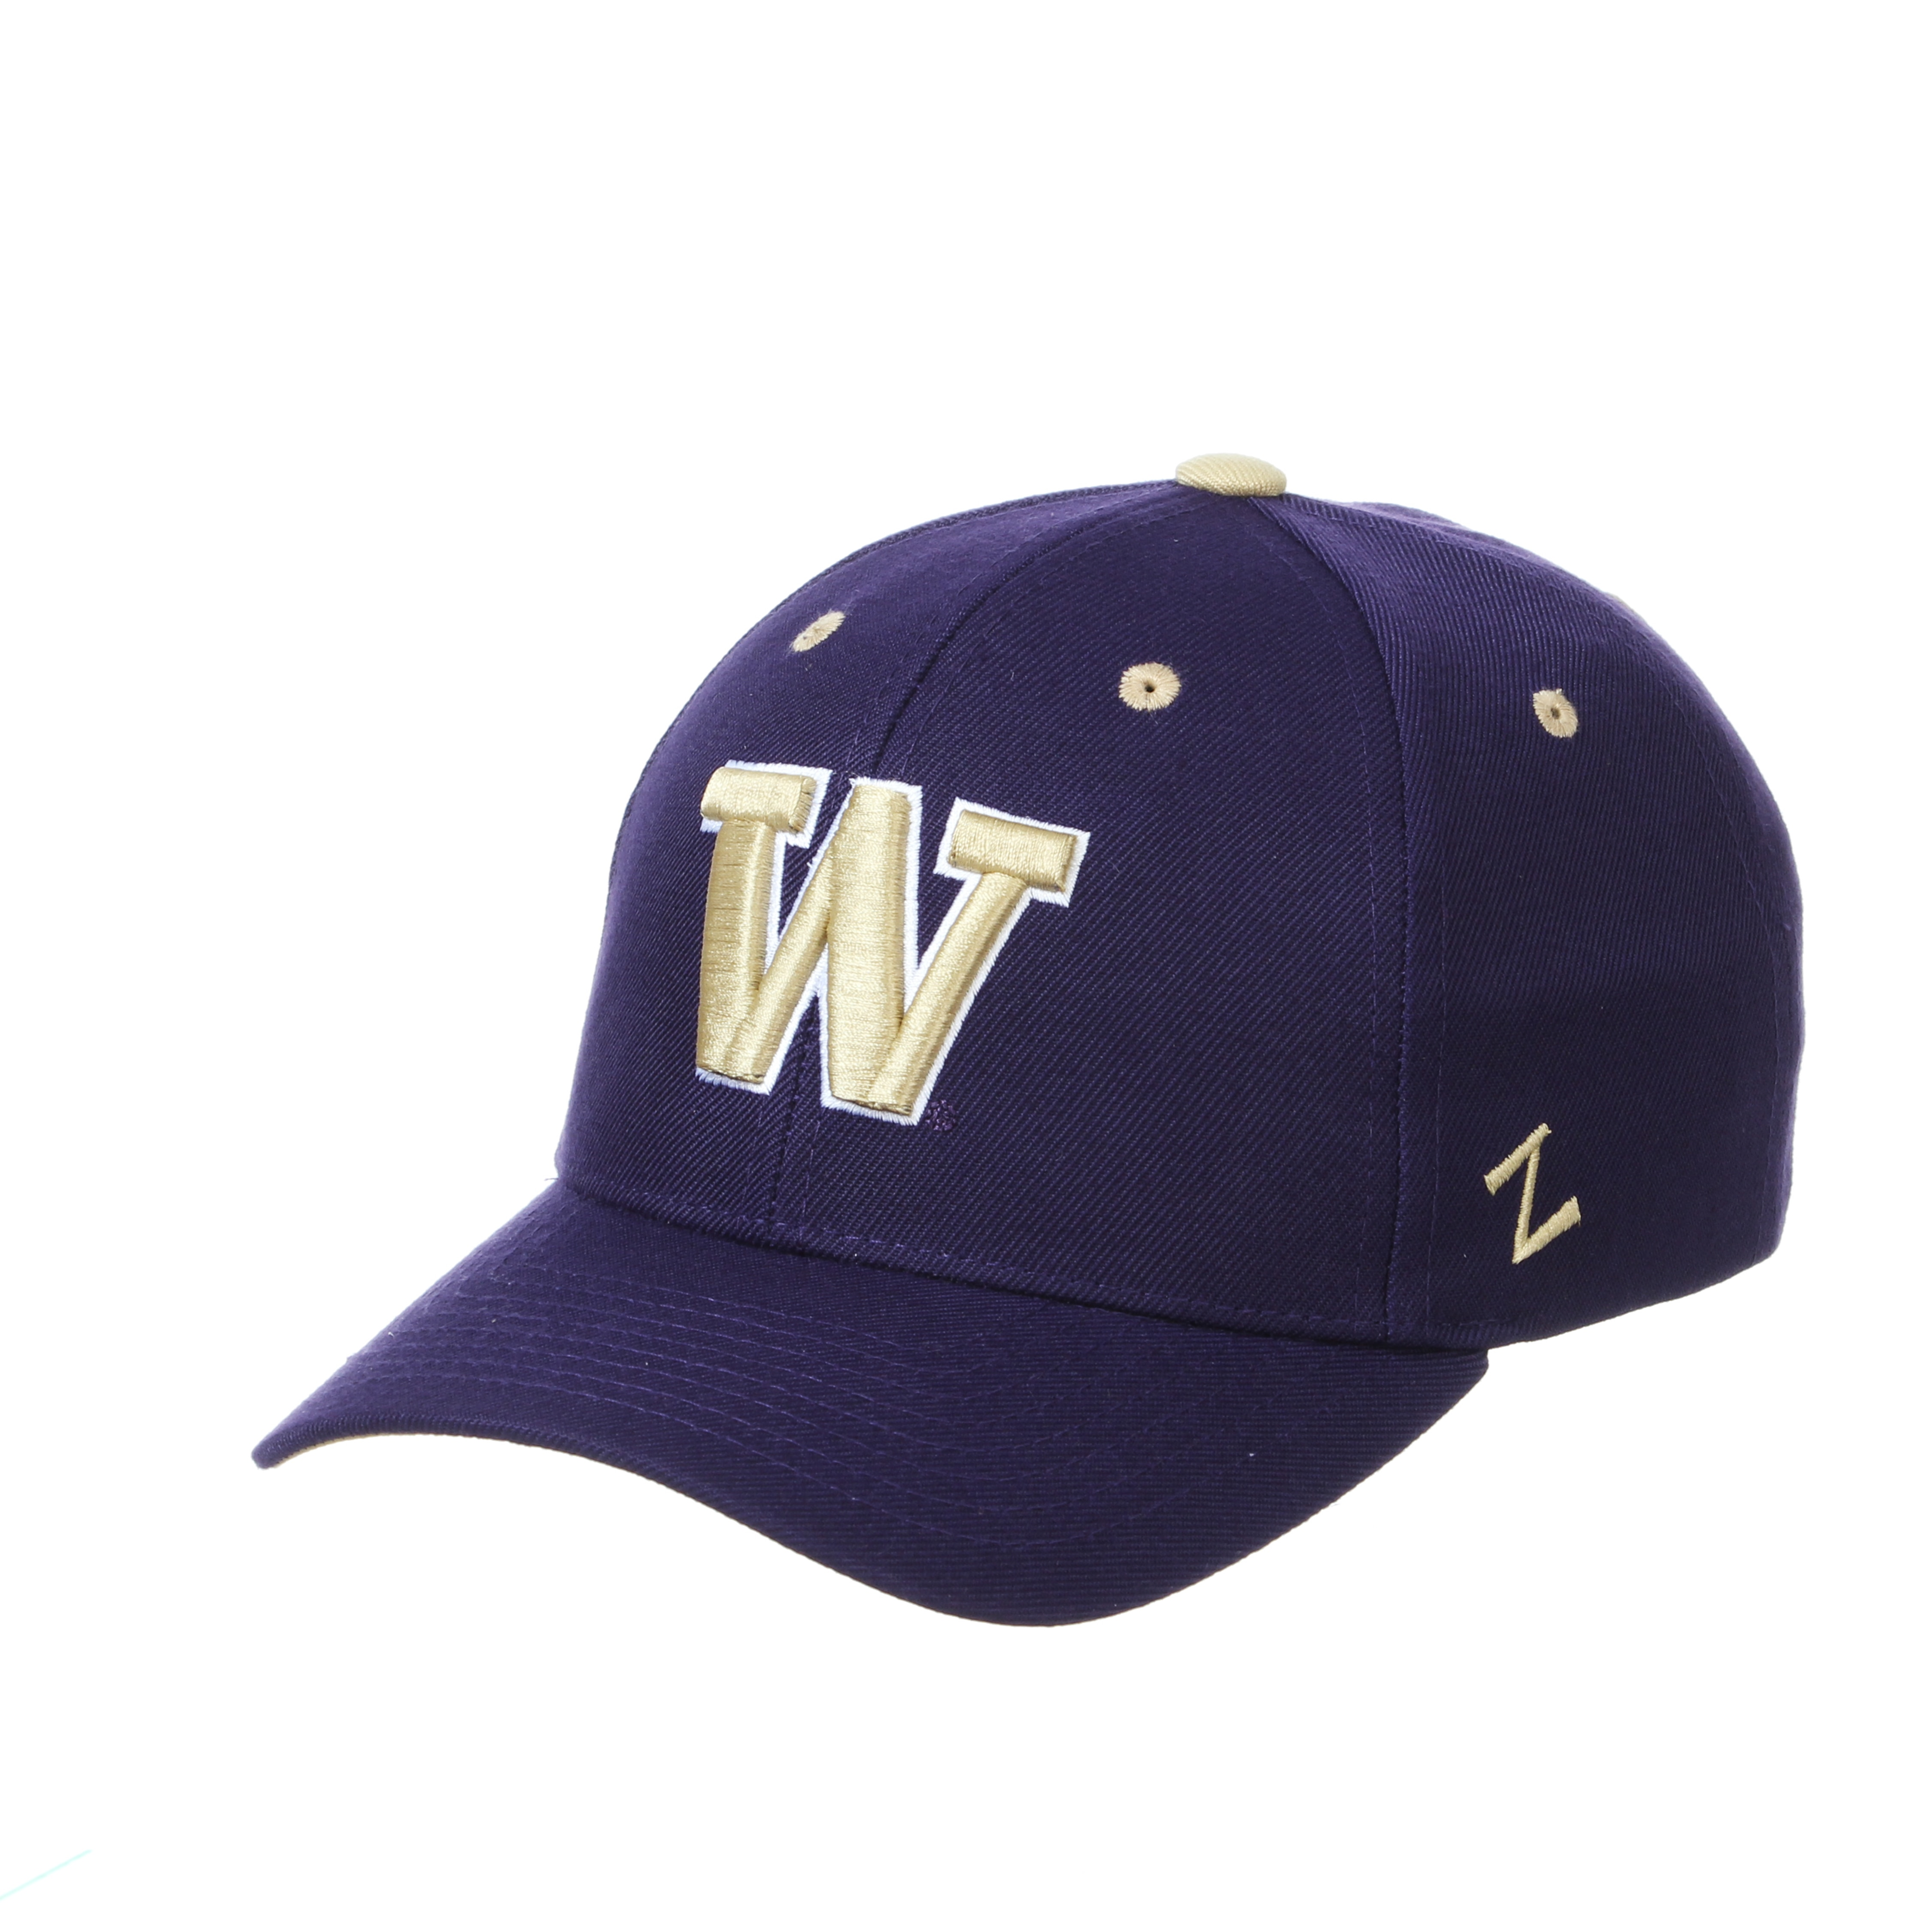 Washington Huskies Zephyr Youth Competitor Structured Curved Bill Adjustable Cap Hat